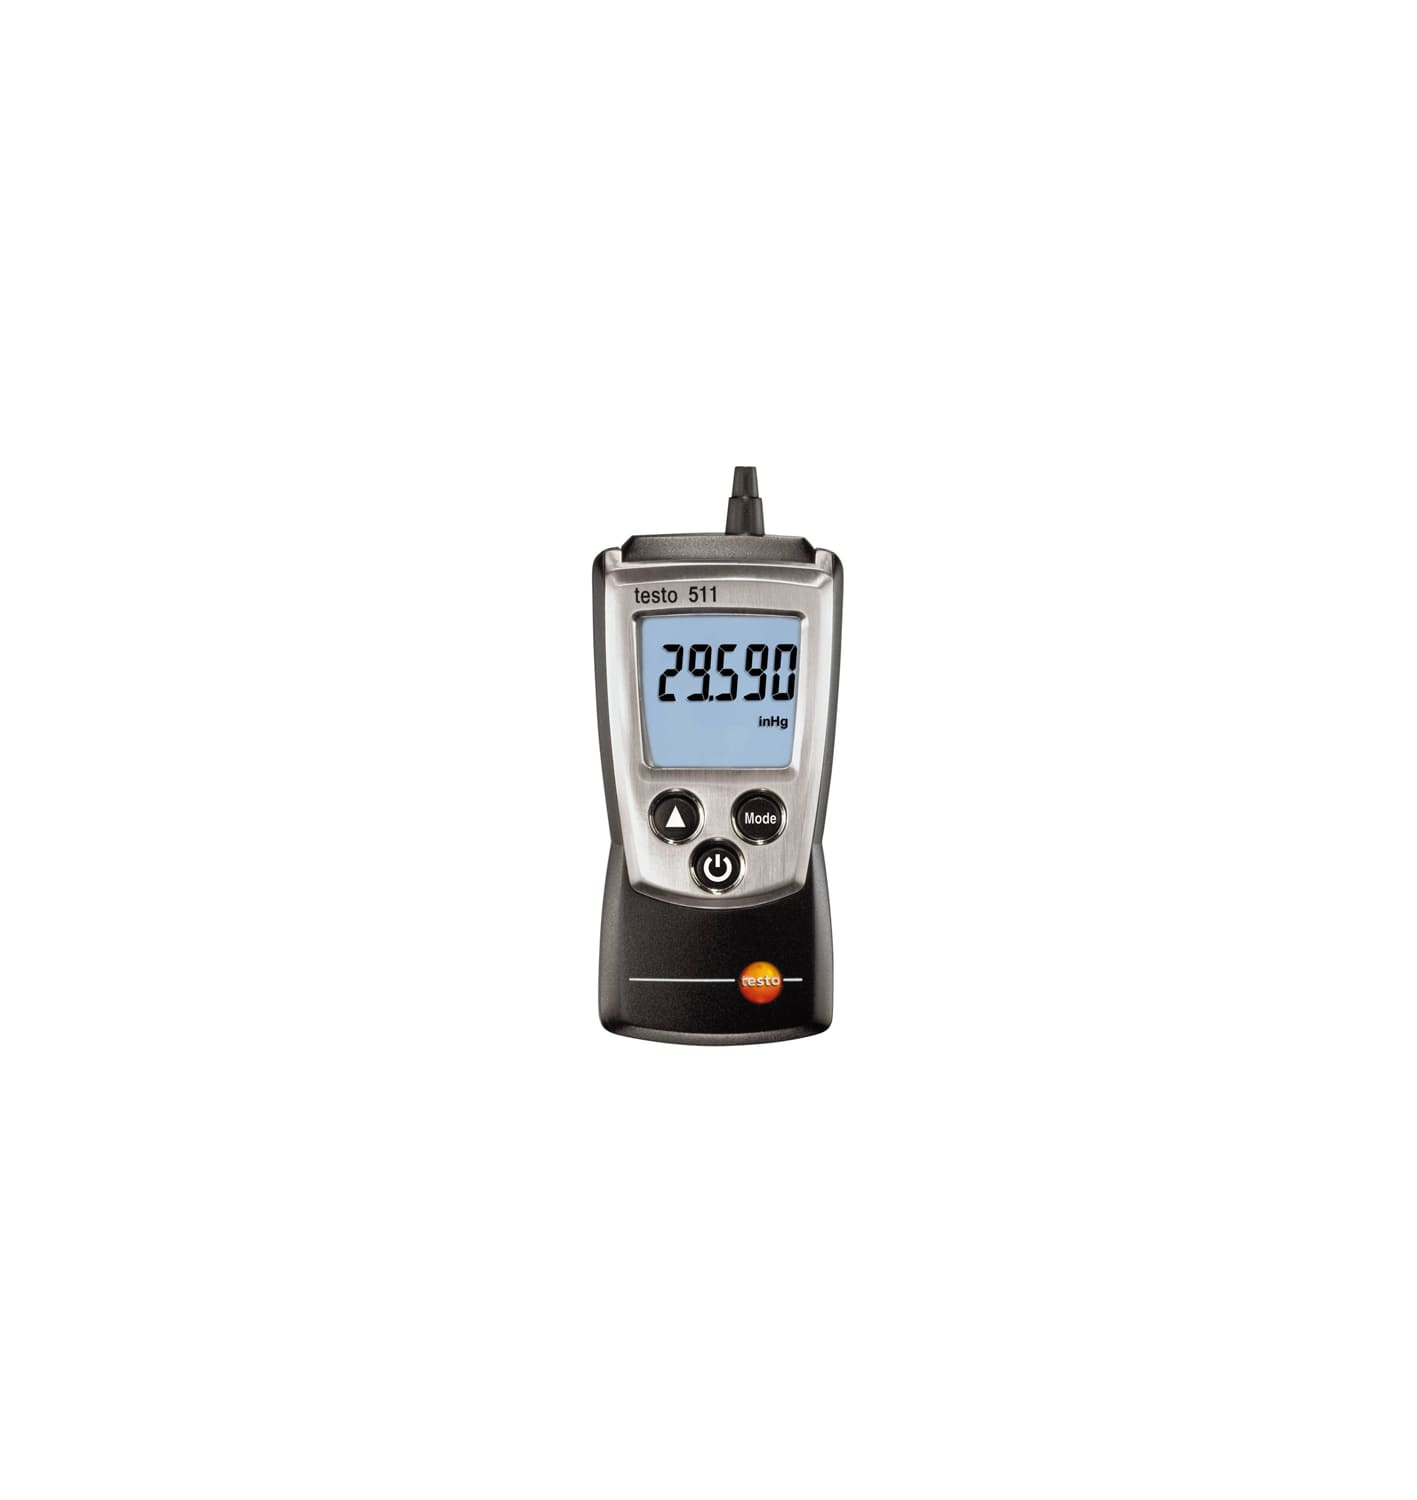 testo 511 - pocket-sized absolute pressure meter